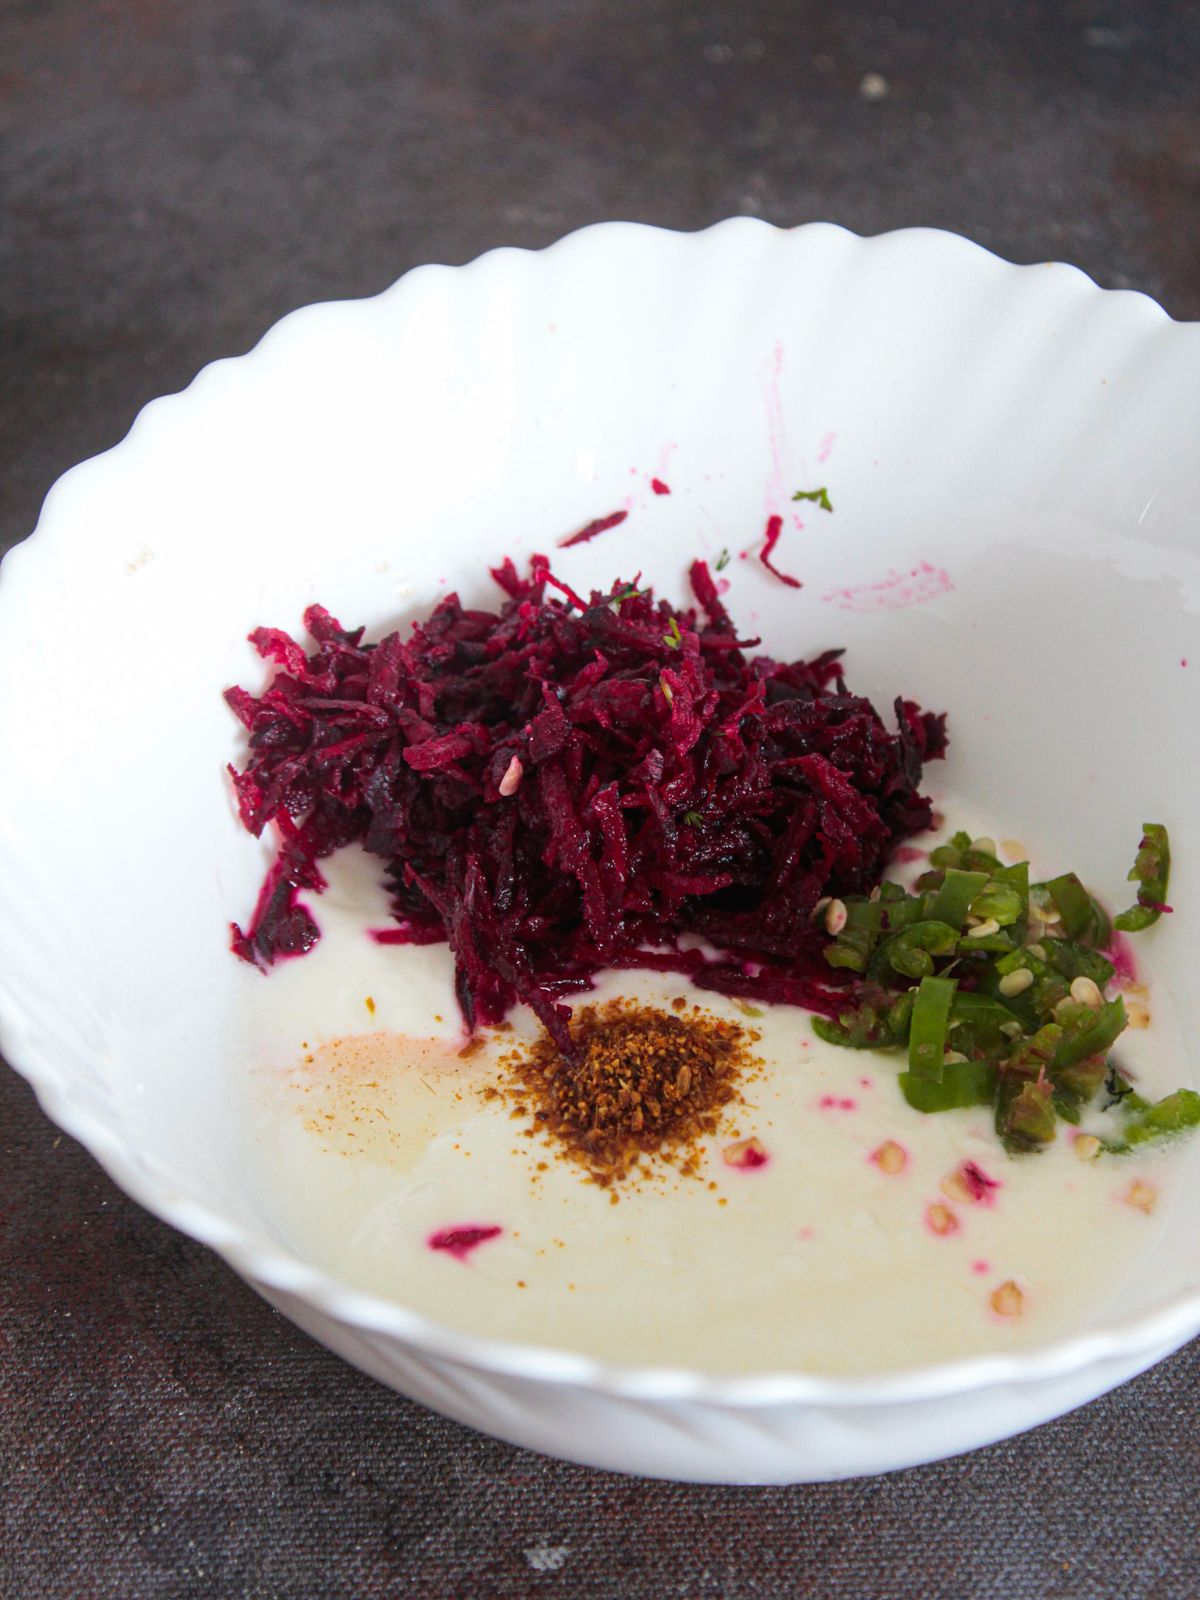 Mix all the ingredients of beetroot raita in a bowl